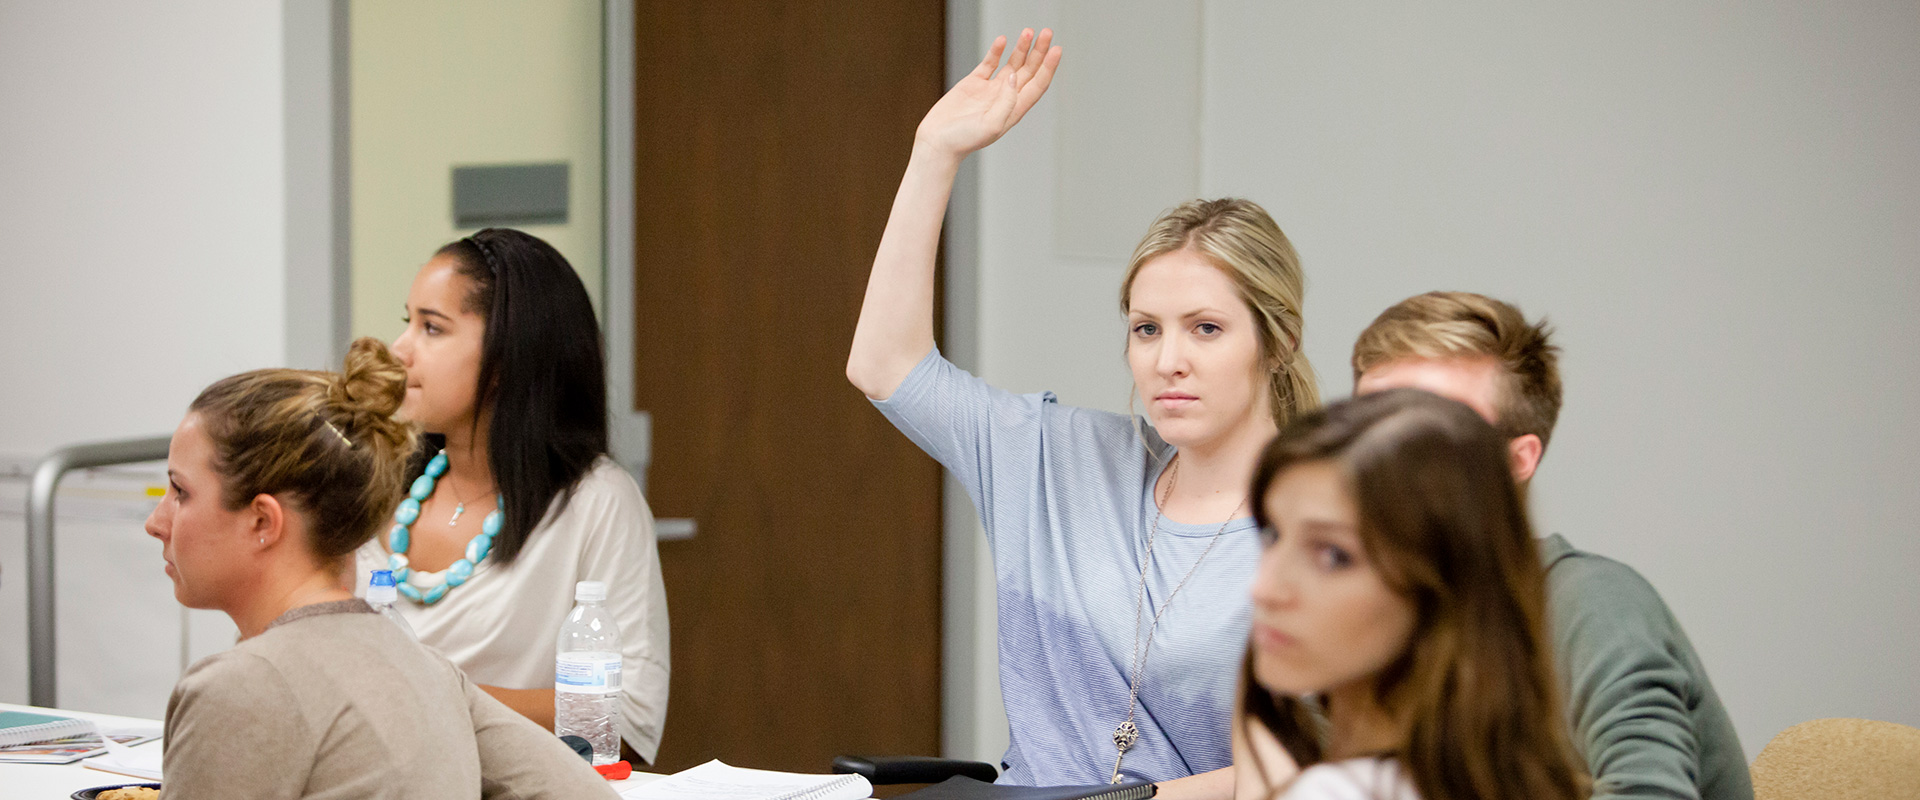 A student raising her hand in class